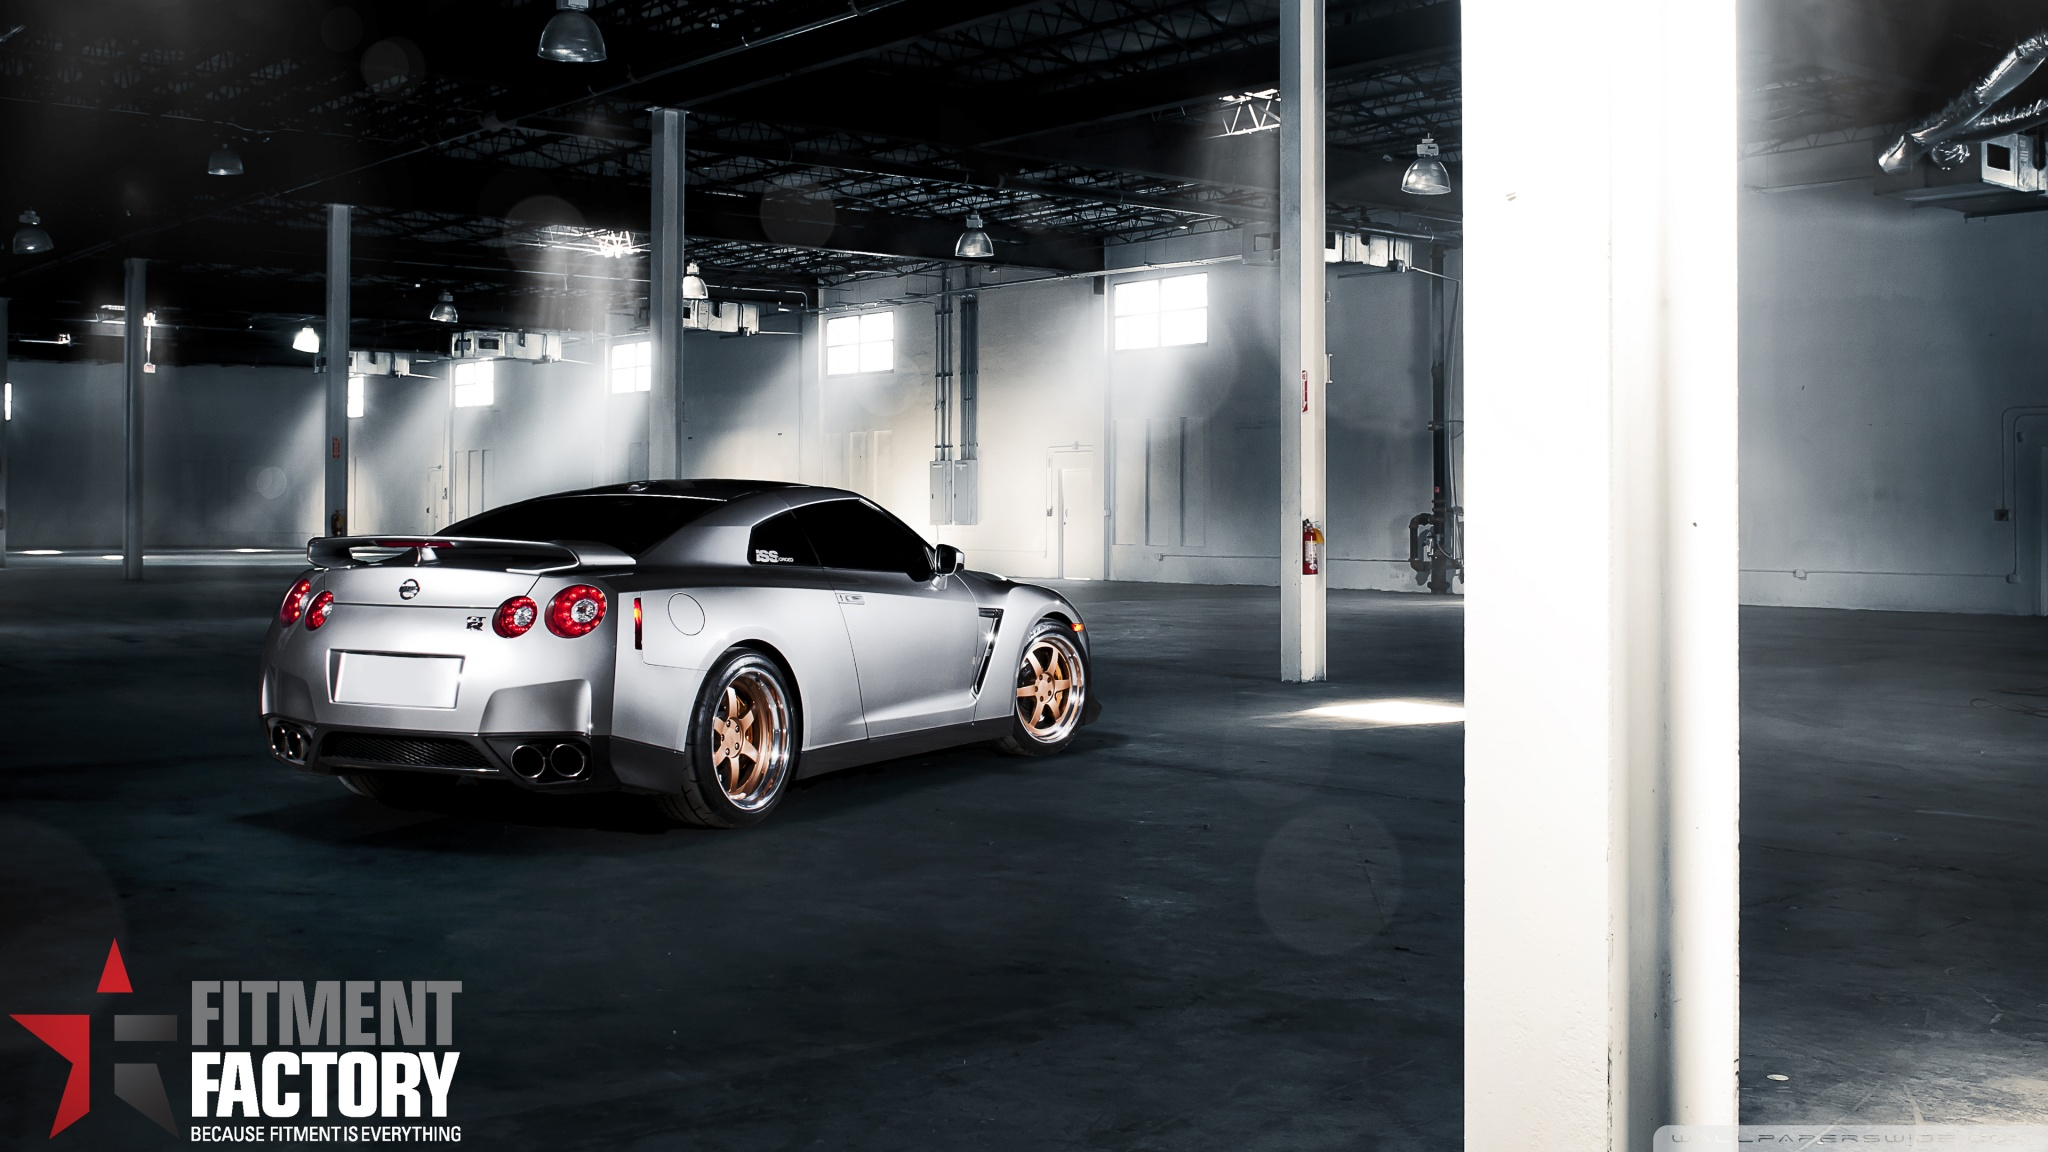 Fitment Factory Nissan GT R HD desktop    High Definition HD Wallpaper